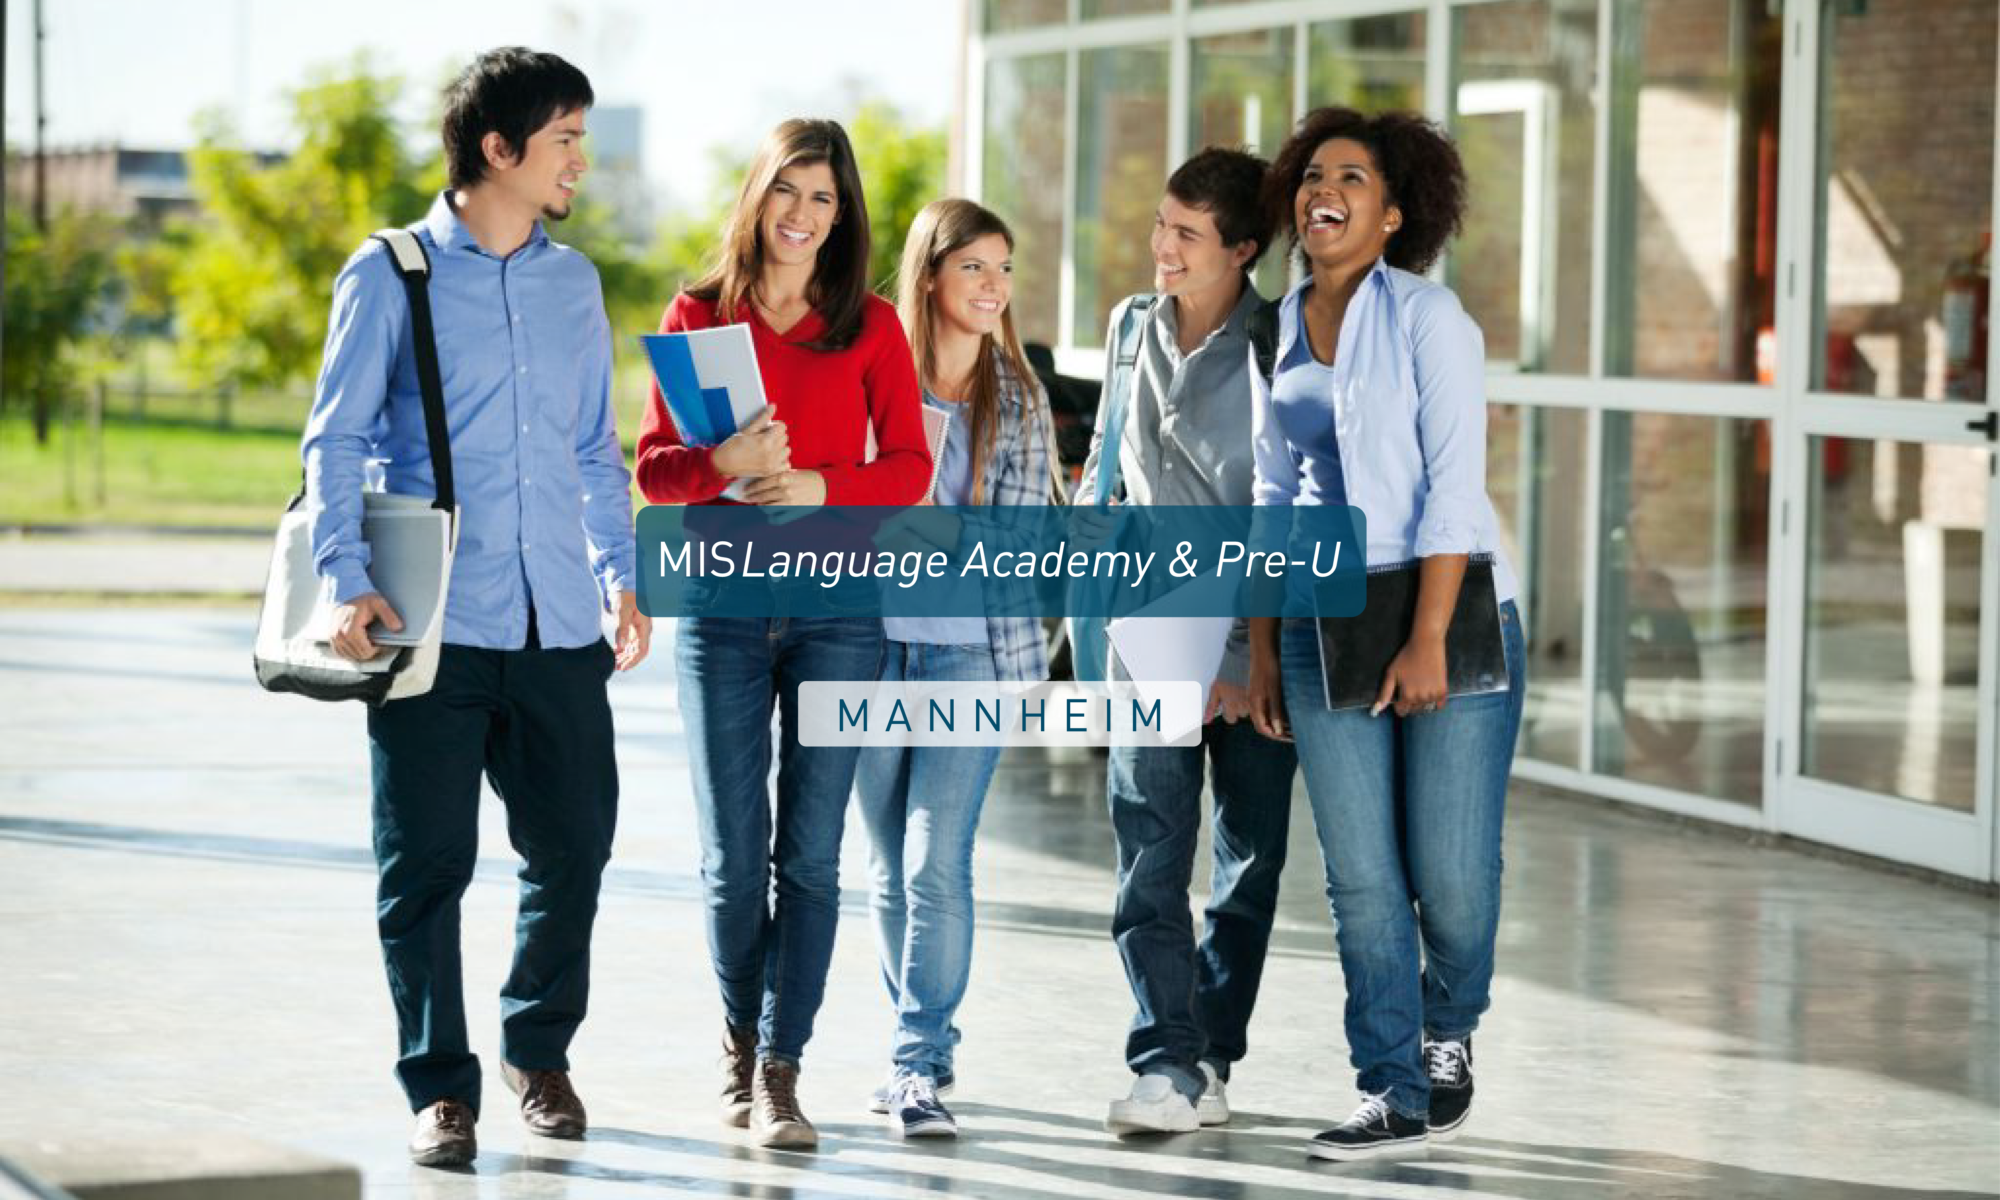 MISLanguage Academy and Pre-U